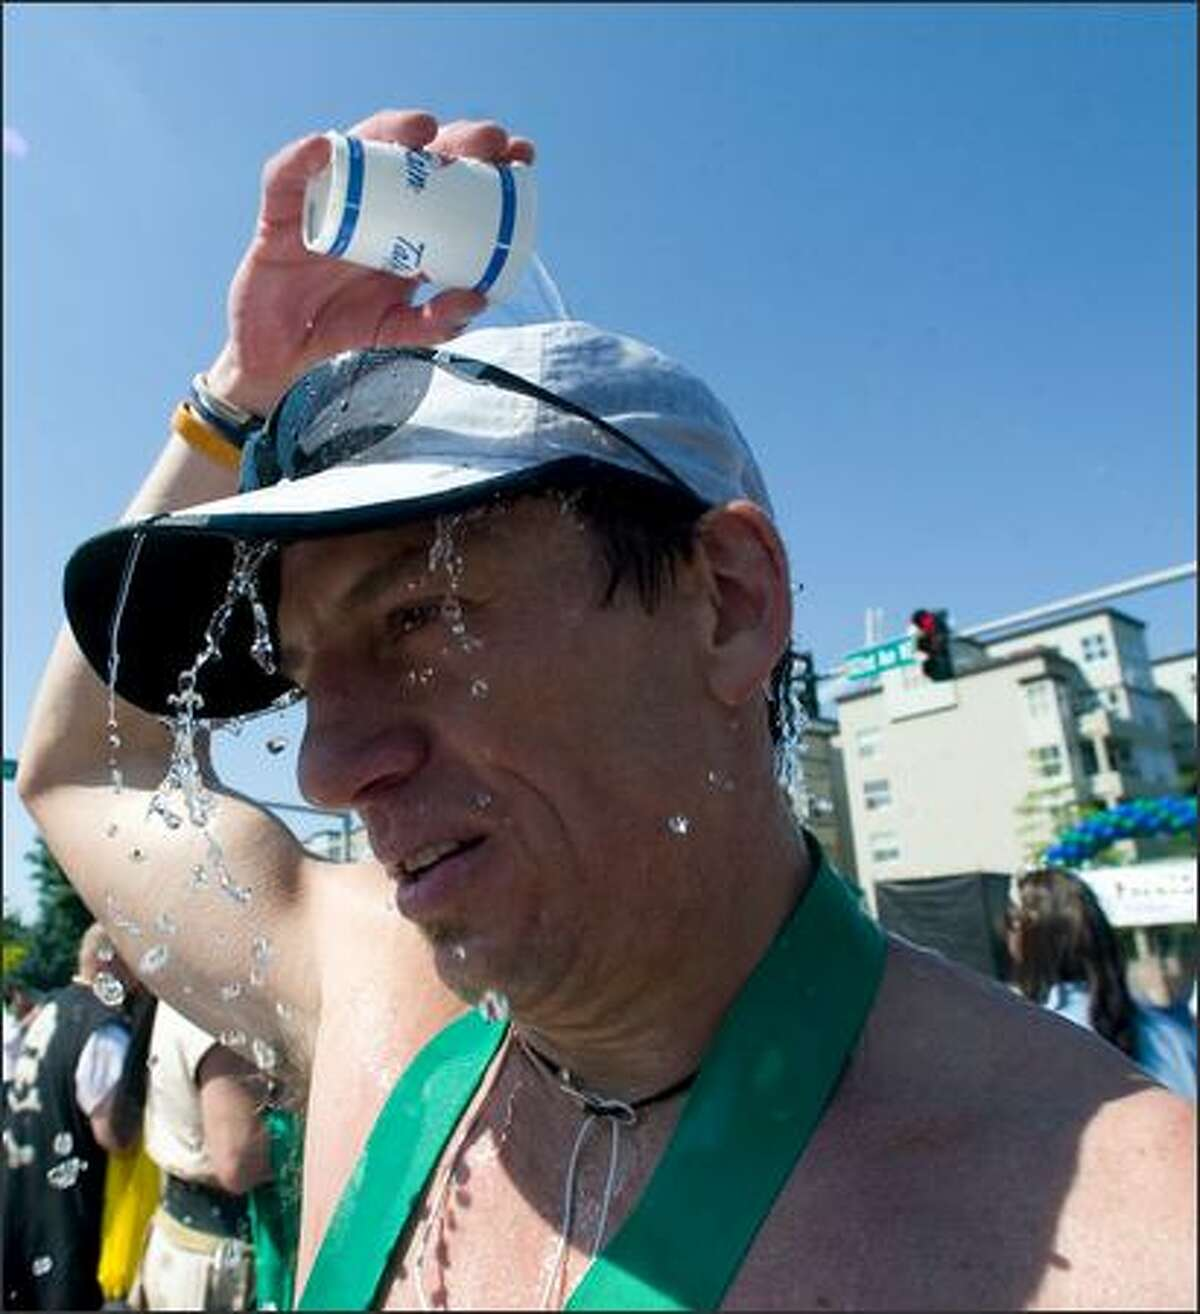 Jonathan Bernard pours a cup of water over his head after finishing the full marathon at the Virginia Mason Team Medicine Seafair Marathon.